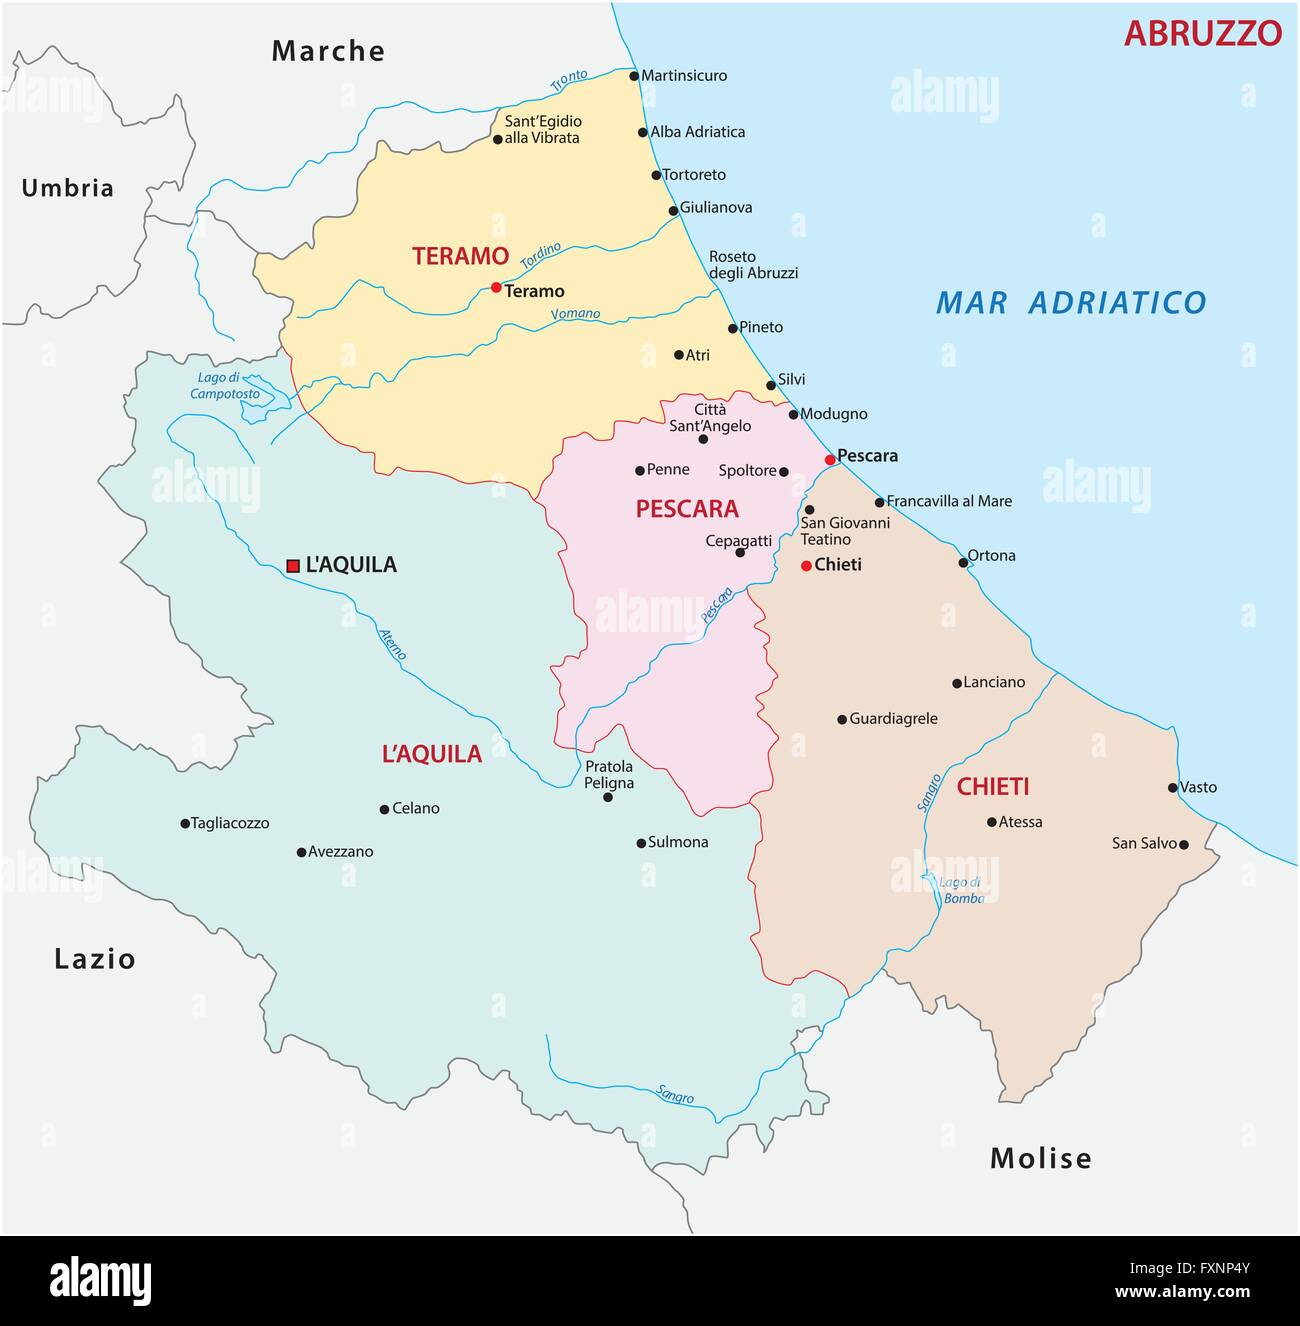 abruzzo administrative map, Italy - Stock Image